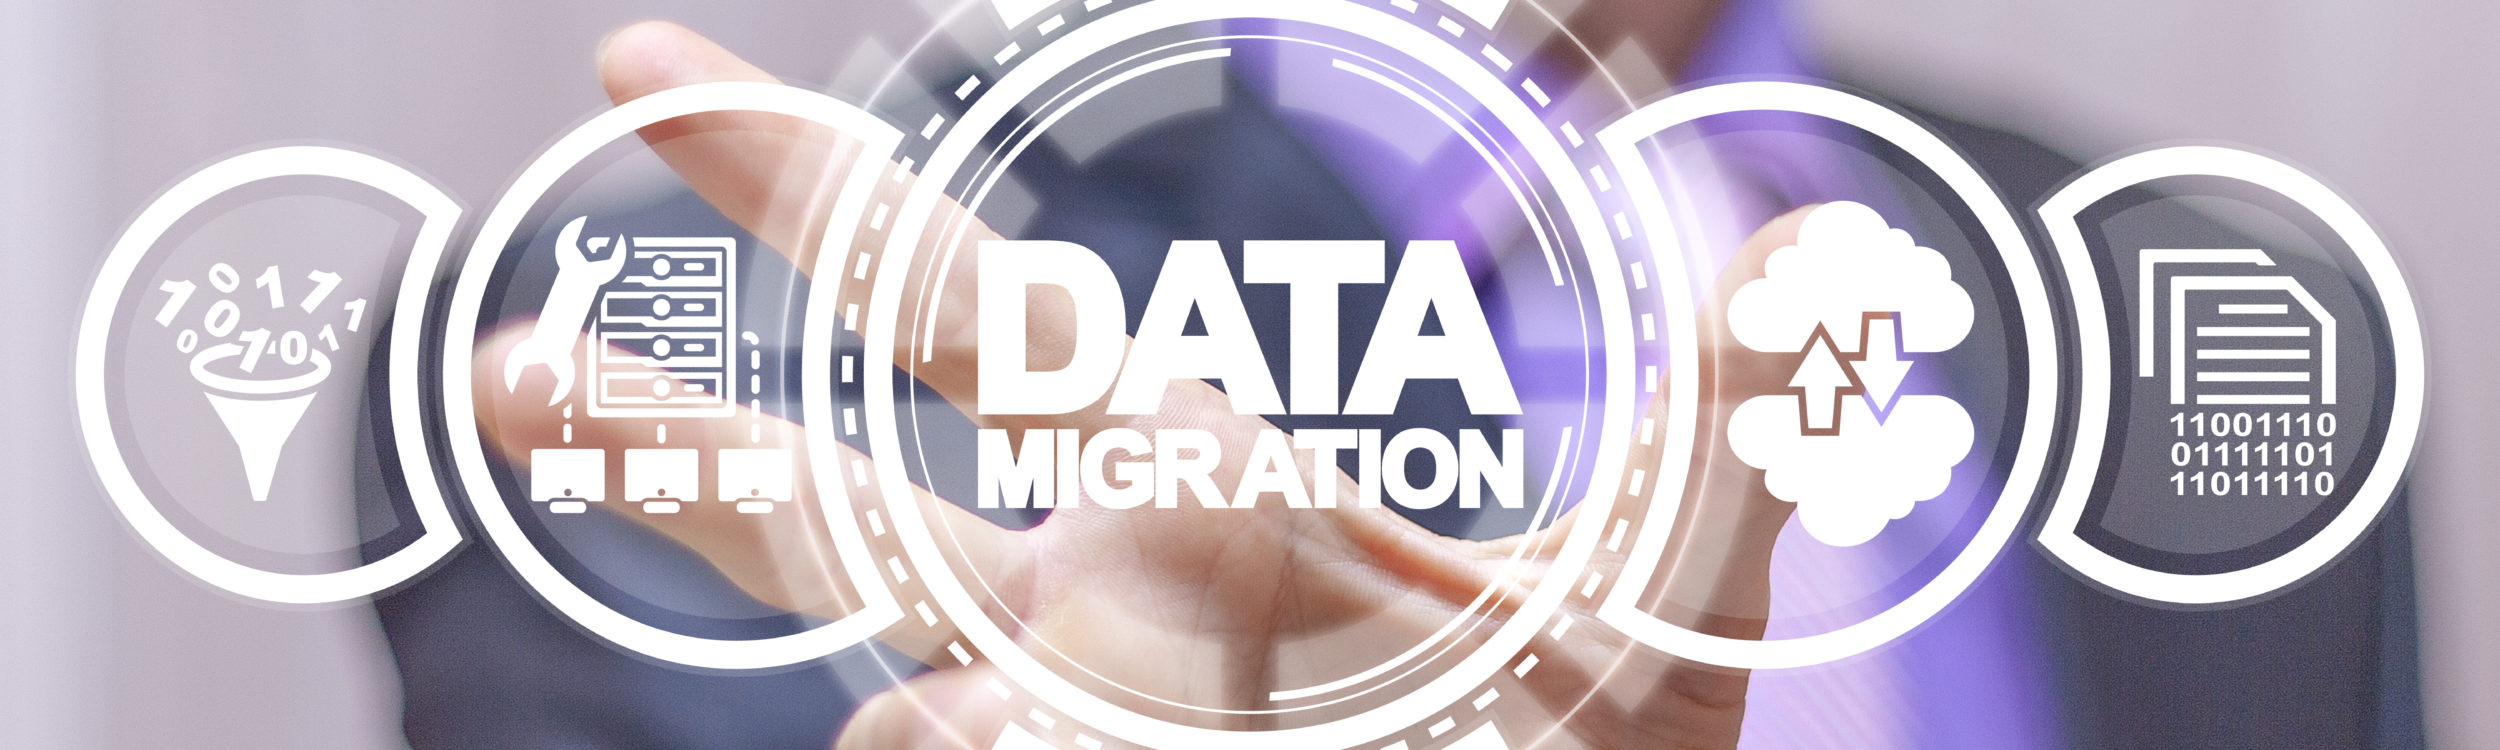 Data Migration: Prevent Data Loss and Build a Sustainable Data Model for the Future featured image